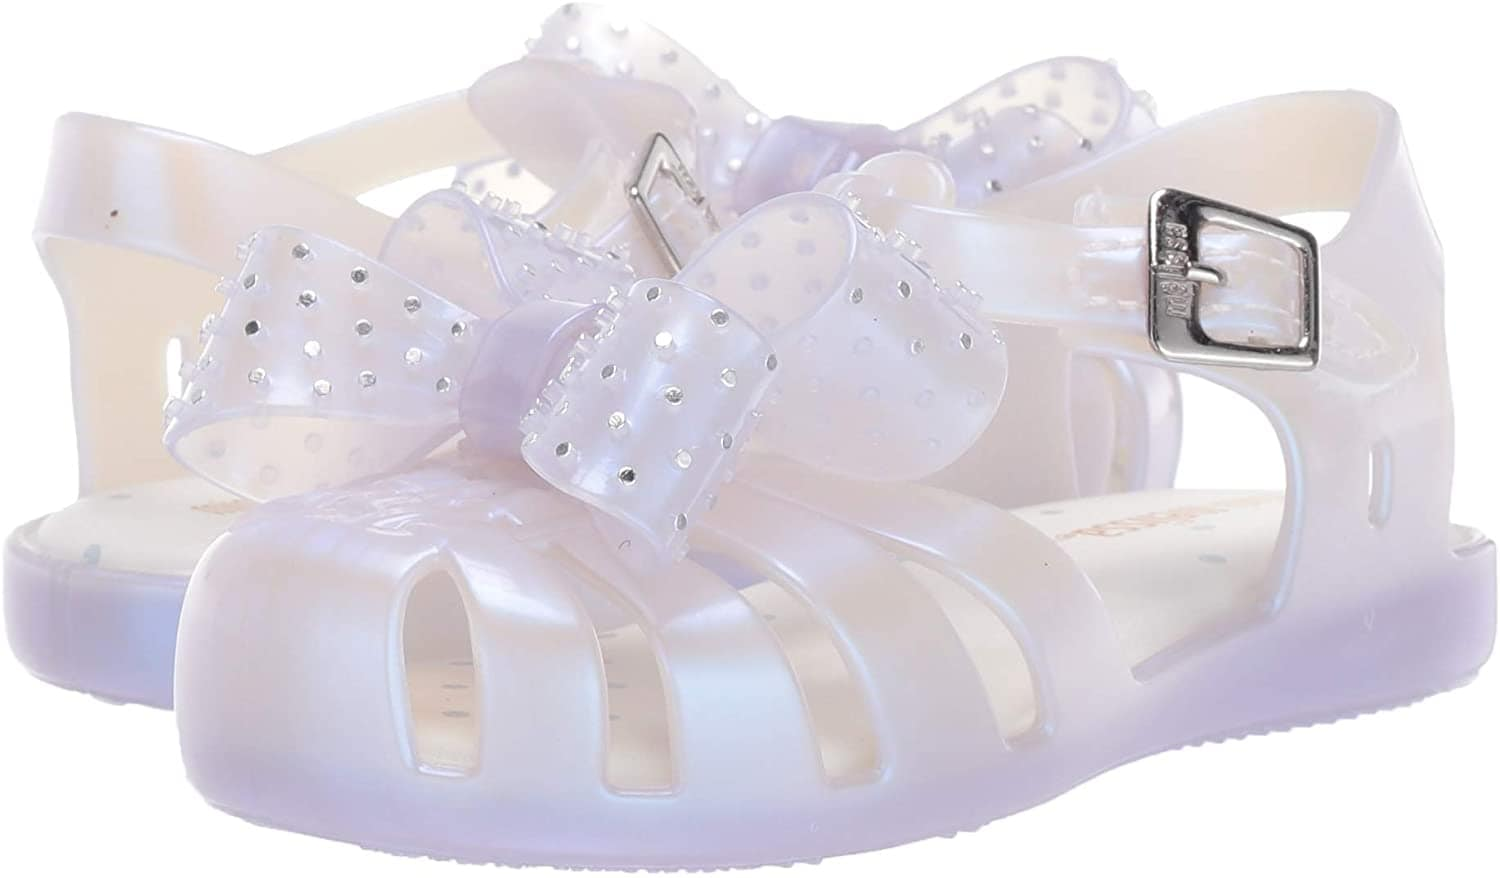 The Mini Aranha XIII shoes are also available in lilac pearl, pink crystal, and black